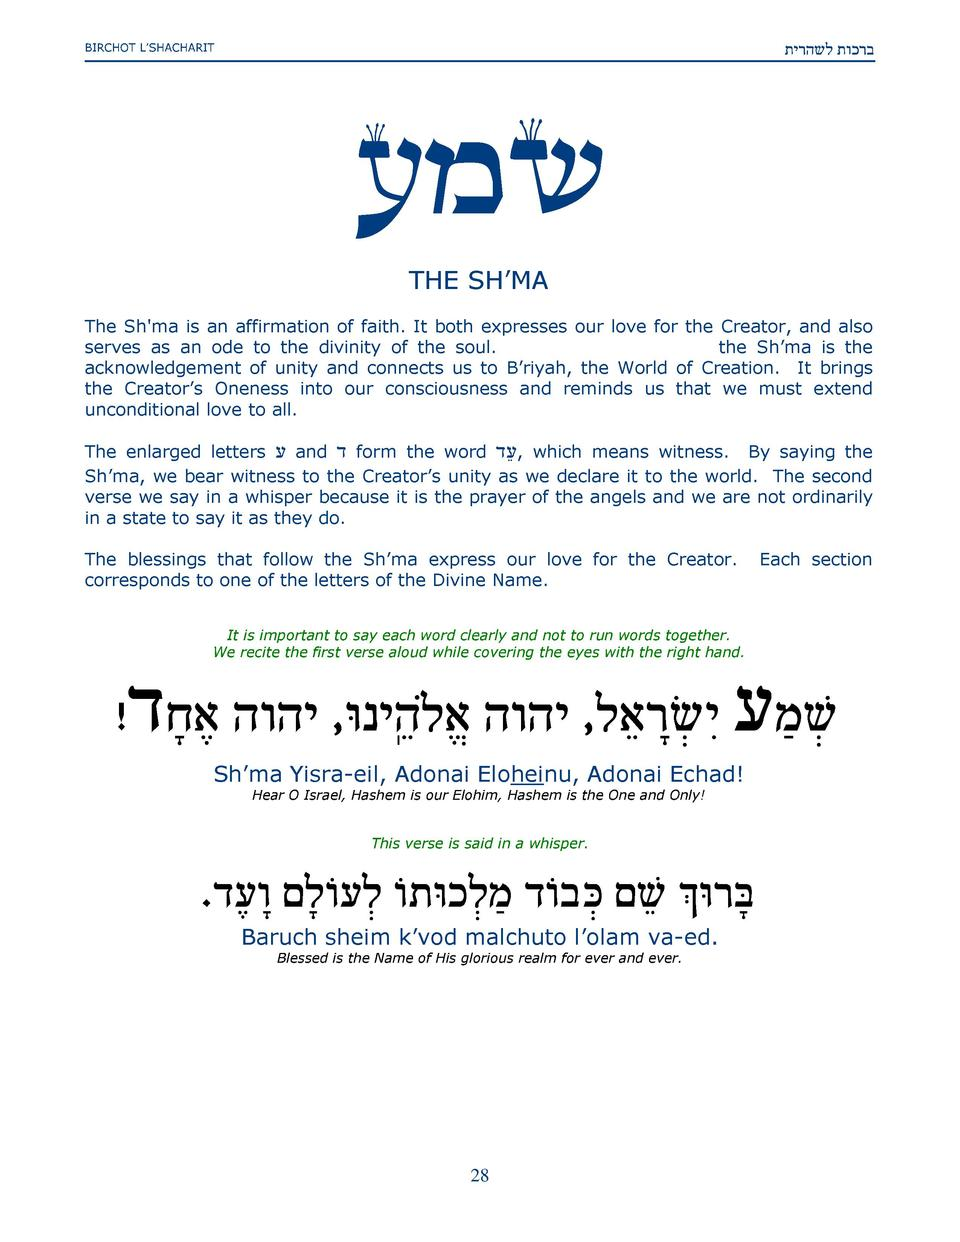 zixdyl zekxa  BIRCHOT L   SHACHARIT  ims THE SH   MA The Sh ma is an affirmation of faith. It both expresses our love for ...